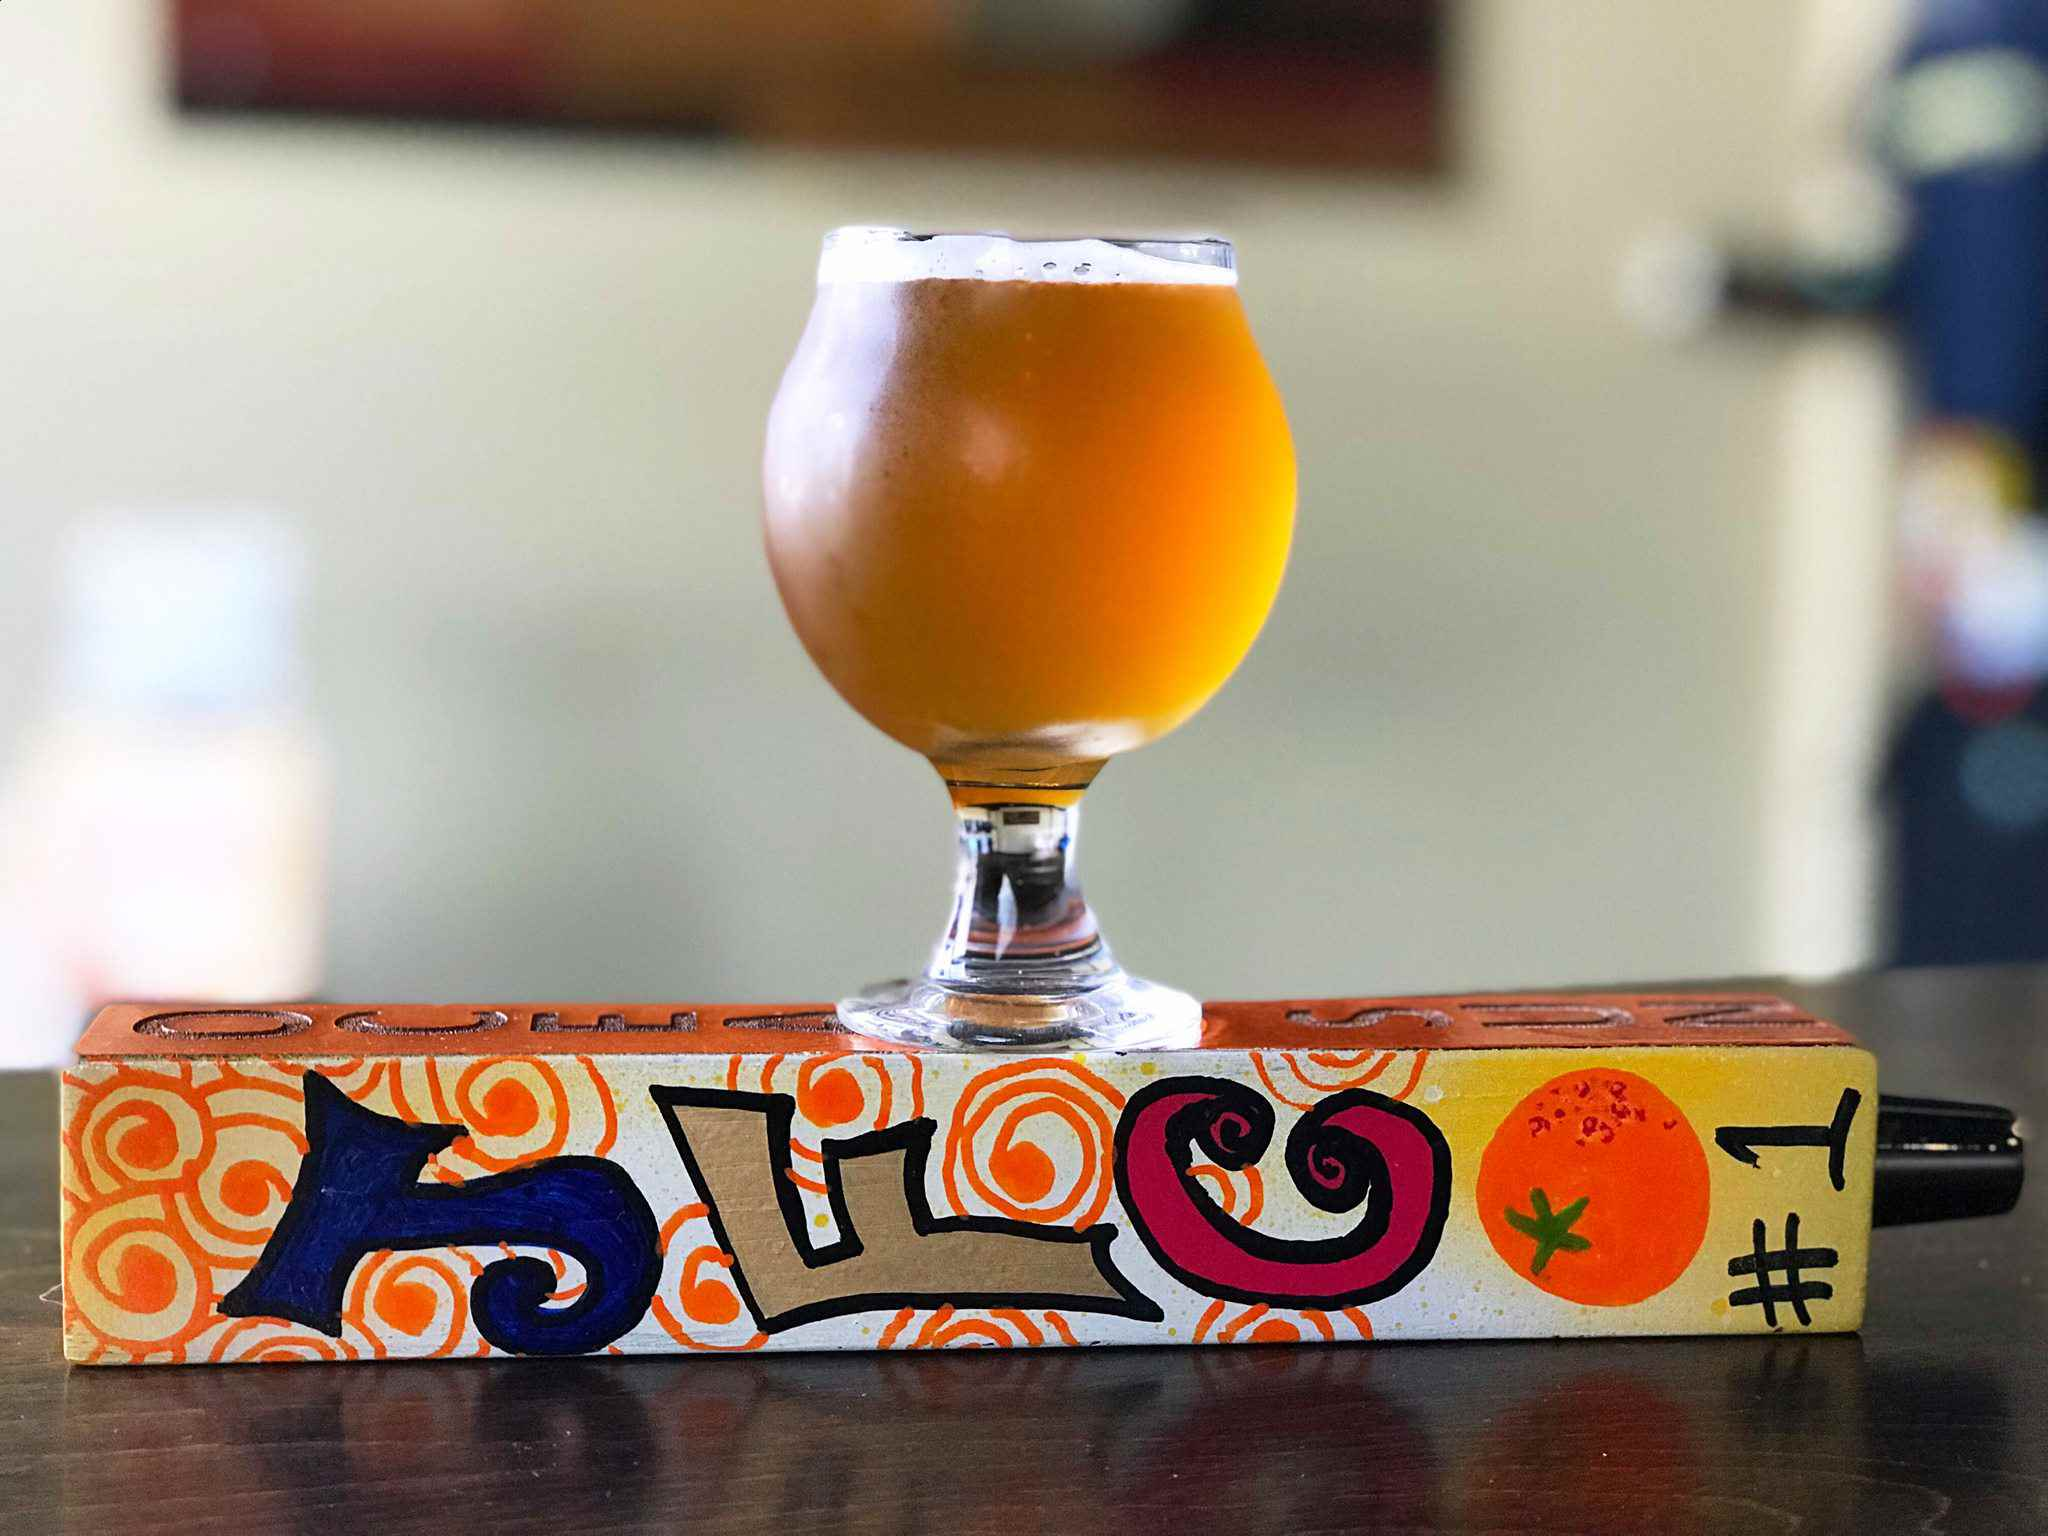 The Top 7 Breweries to Visit in Orlando San Go Breweries Map on love s united states map, media map, sugar map, attractions map, government map, pizza map, marine map, ice cream map,